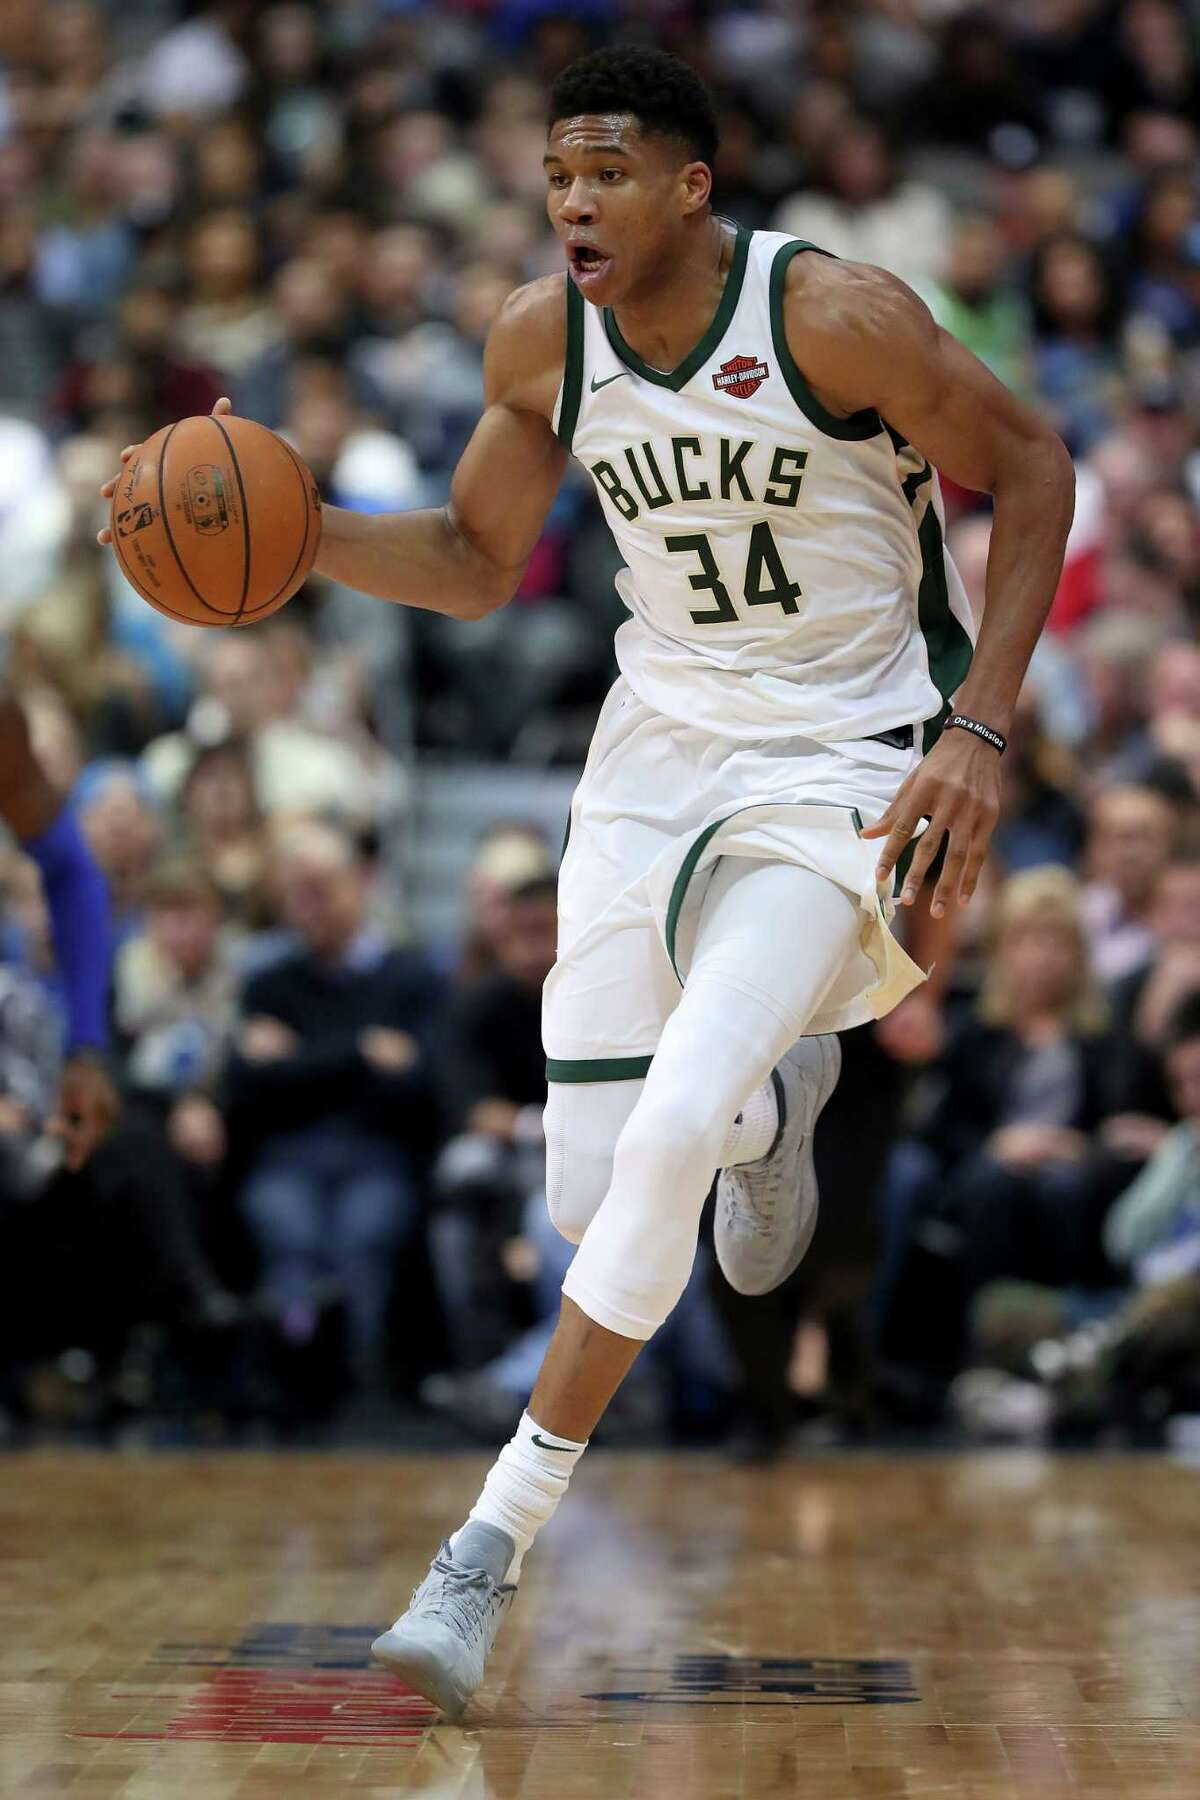 DALLAS, TX - NOVEMBER 18: Giannis Antetokounmpo #34 of the Milwaukee Bucks dripples the ball against the Dallas Mavericks in the second half at American Airlines Center on November 18, 2017 in Dallas, Texas. NOTE TO USER: User expressly acknowledges and agrees that, by downloading and or using this photograph, User is consenting to the terms and conditions of the Getty Images License Agreement. (Photo by Tom Pennington/Getty Images) ORG XMIT: 775026883